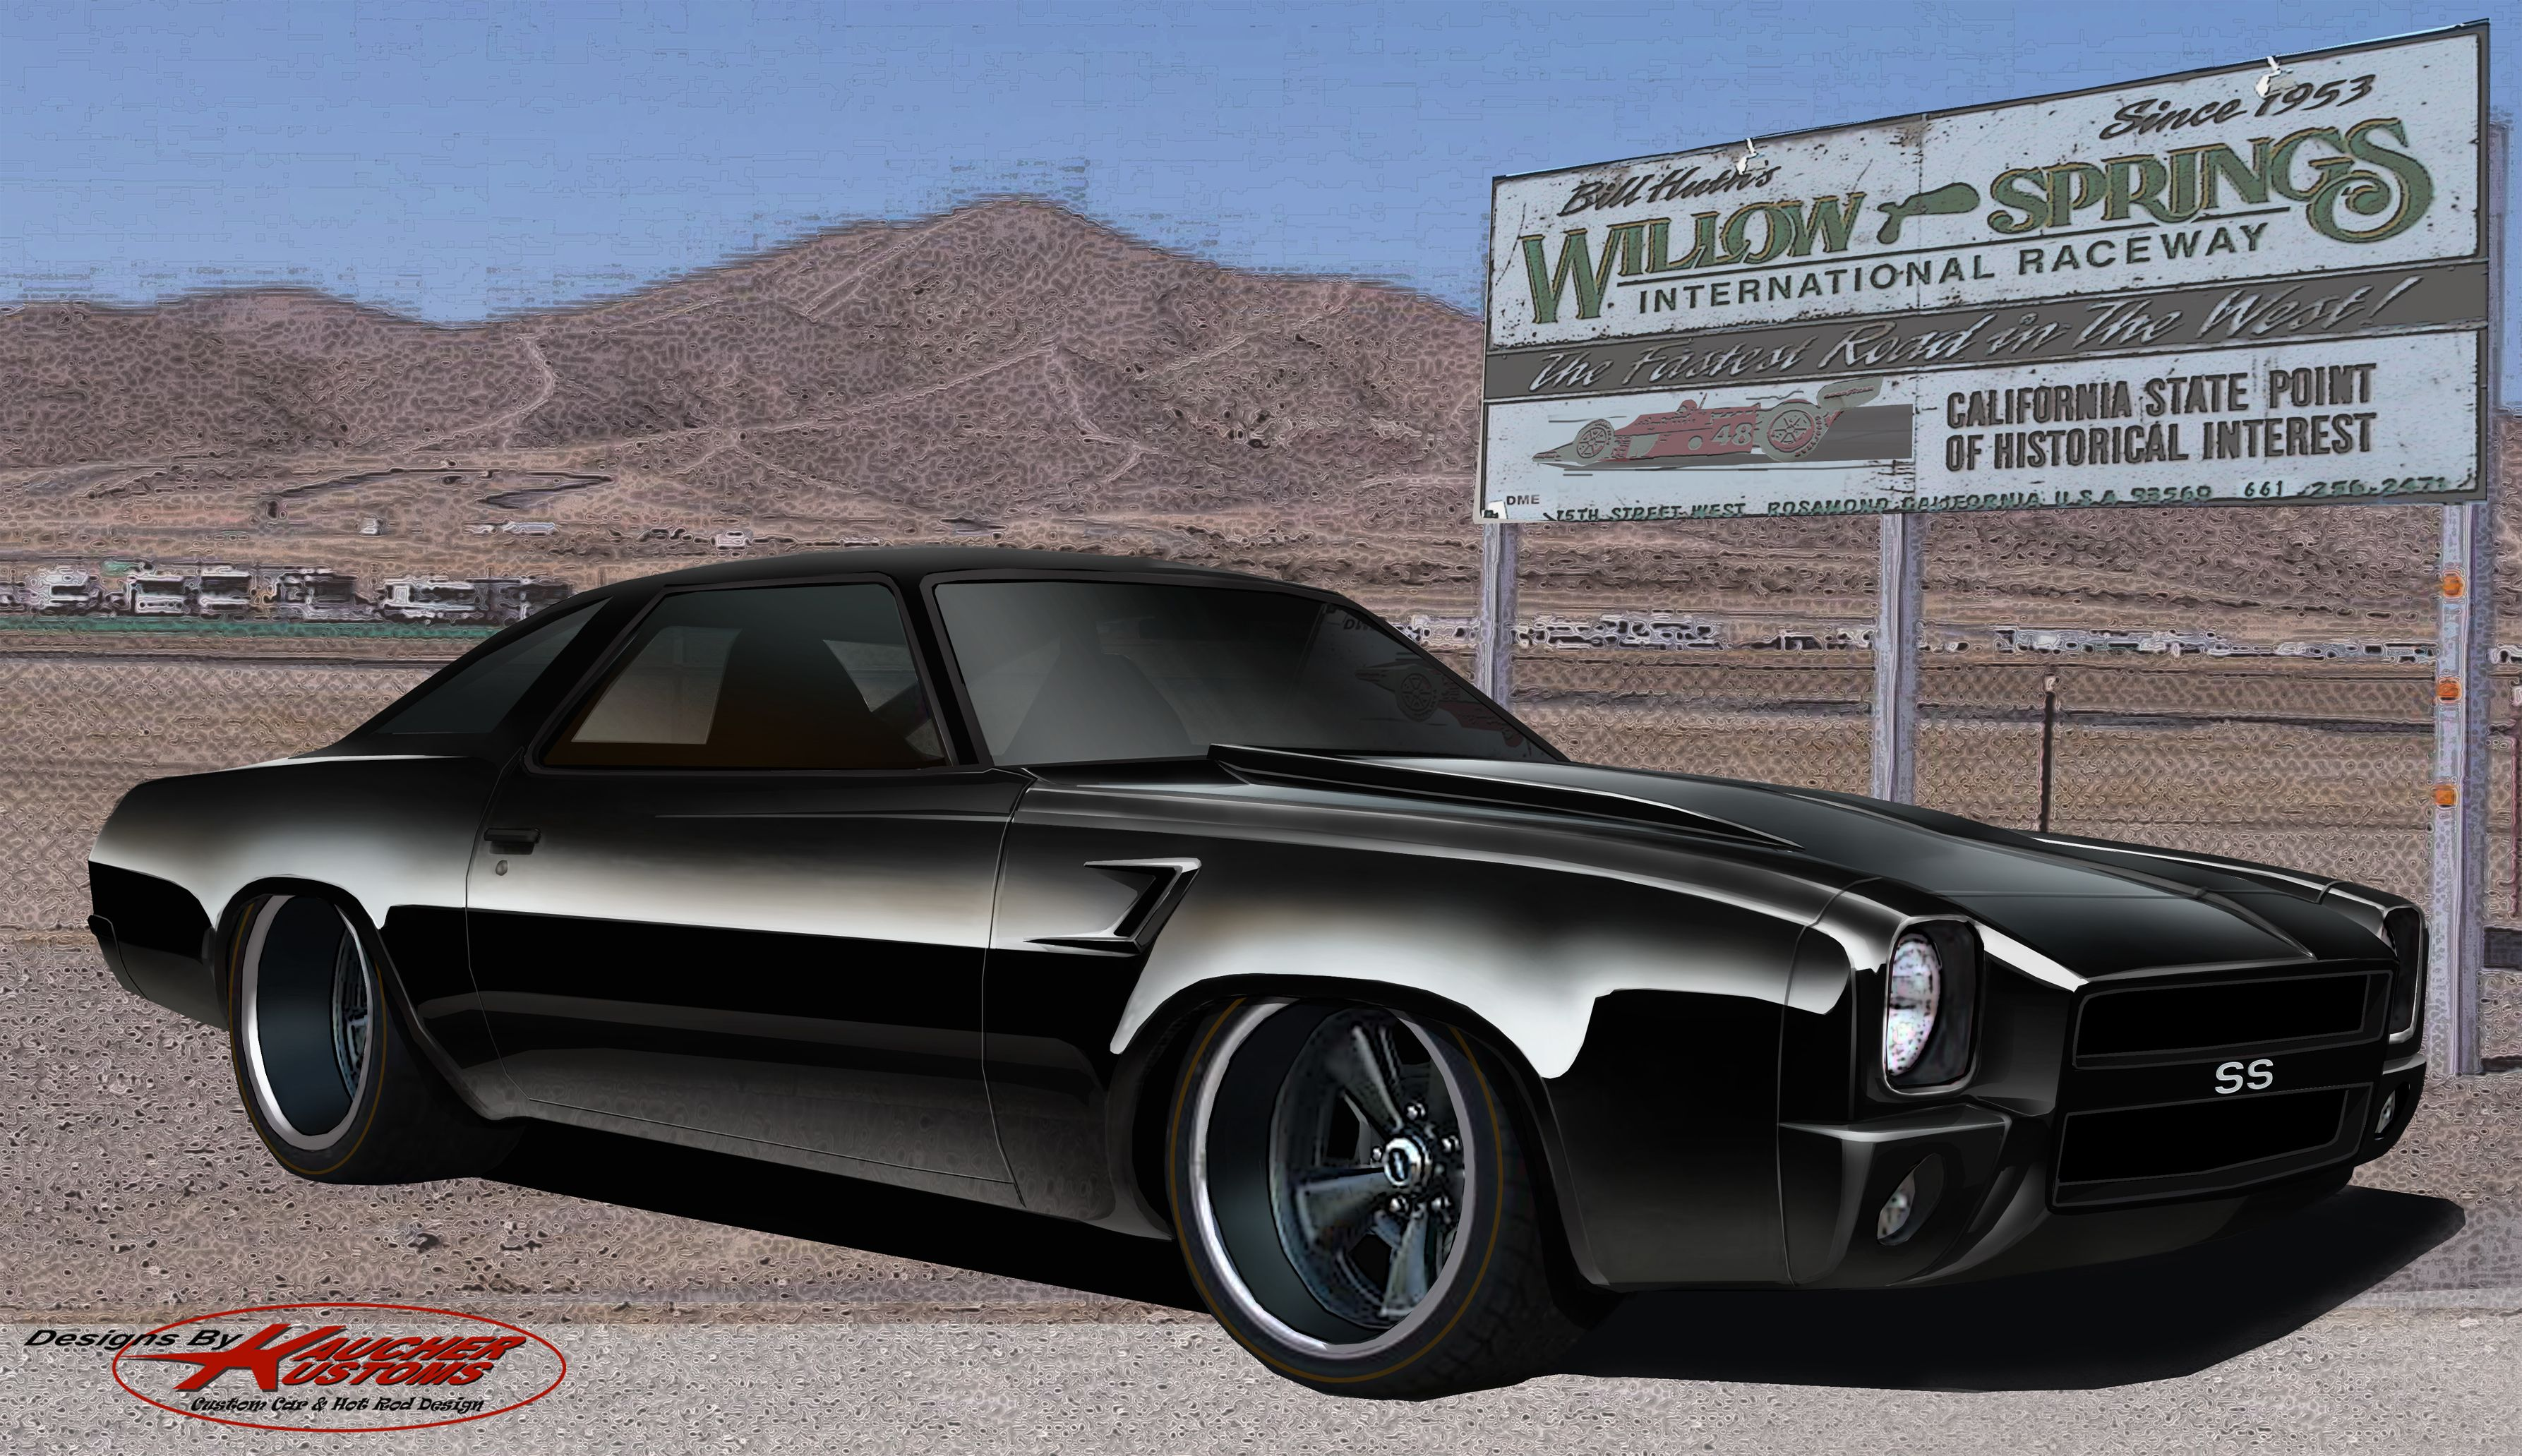 73 chevelle ss custom short bumpered front end concept i did for chevelle magazine